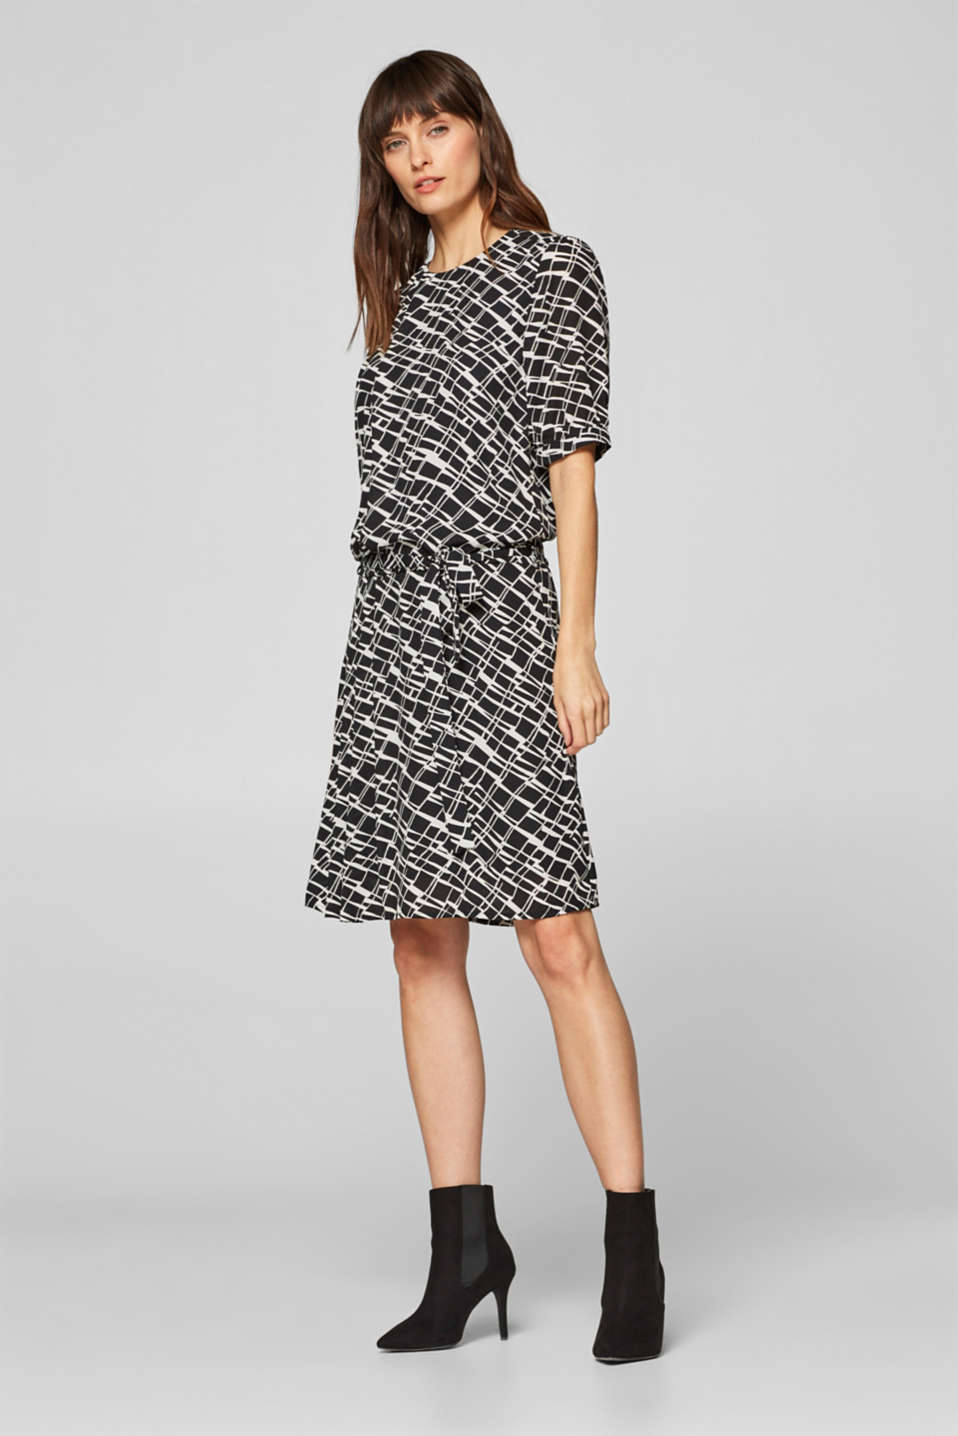 Esprit - Dress with a graphic print